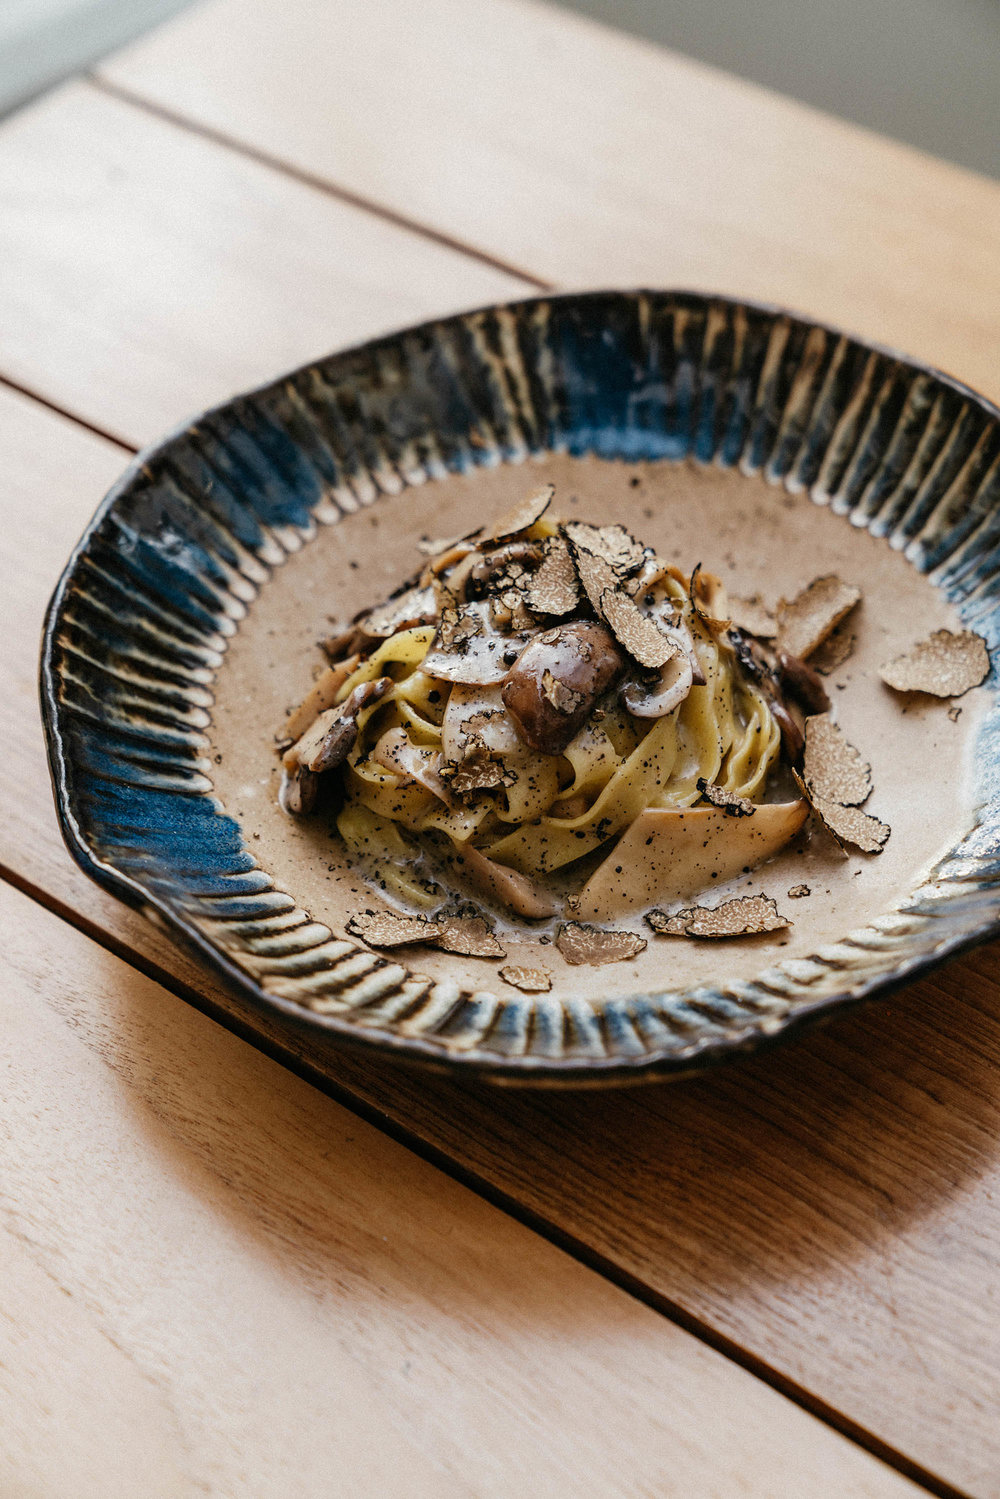 Tagliatelle w/ wild mushrooms and truffle